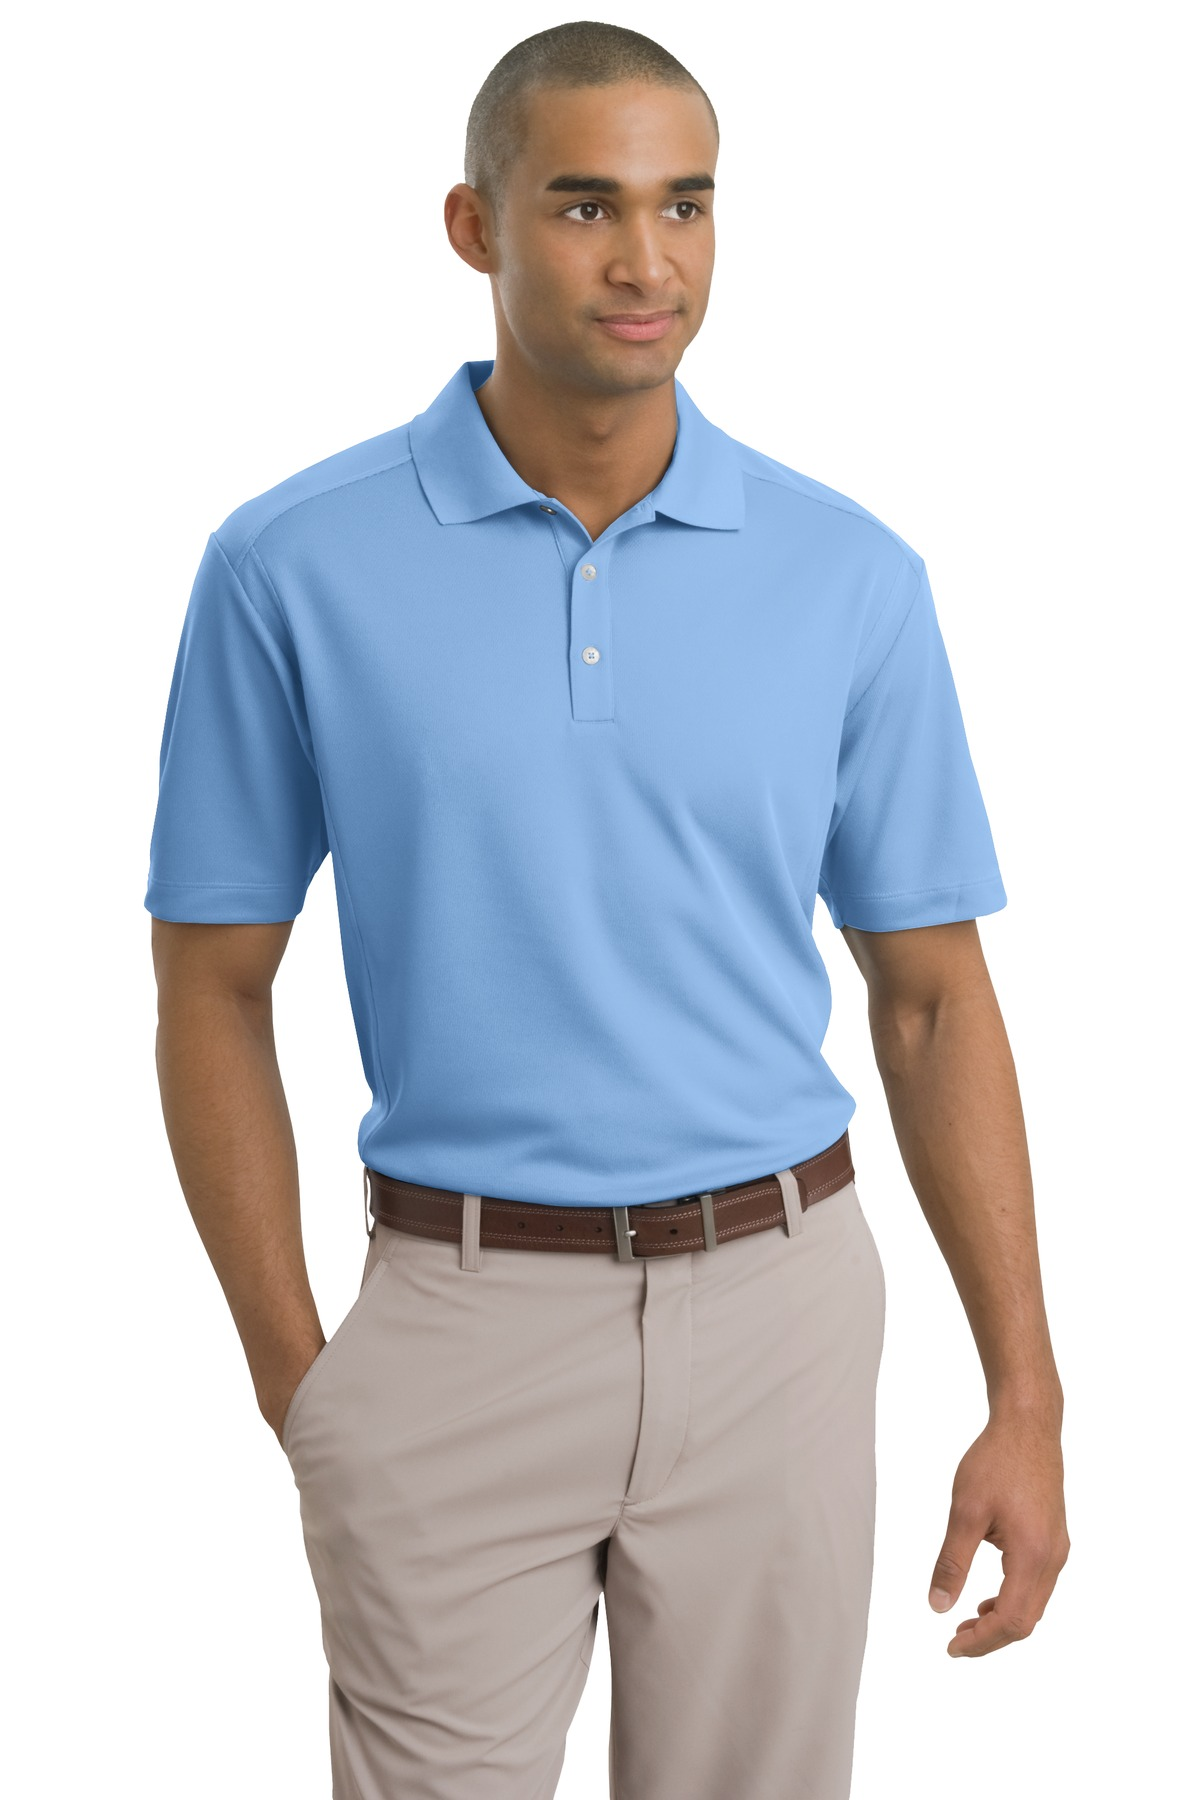 Nike Dri-FIT Classic Polo.  267020 - Skyline Blue